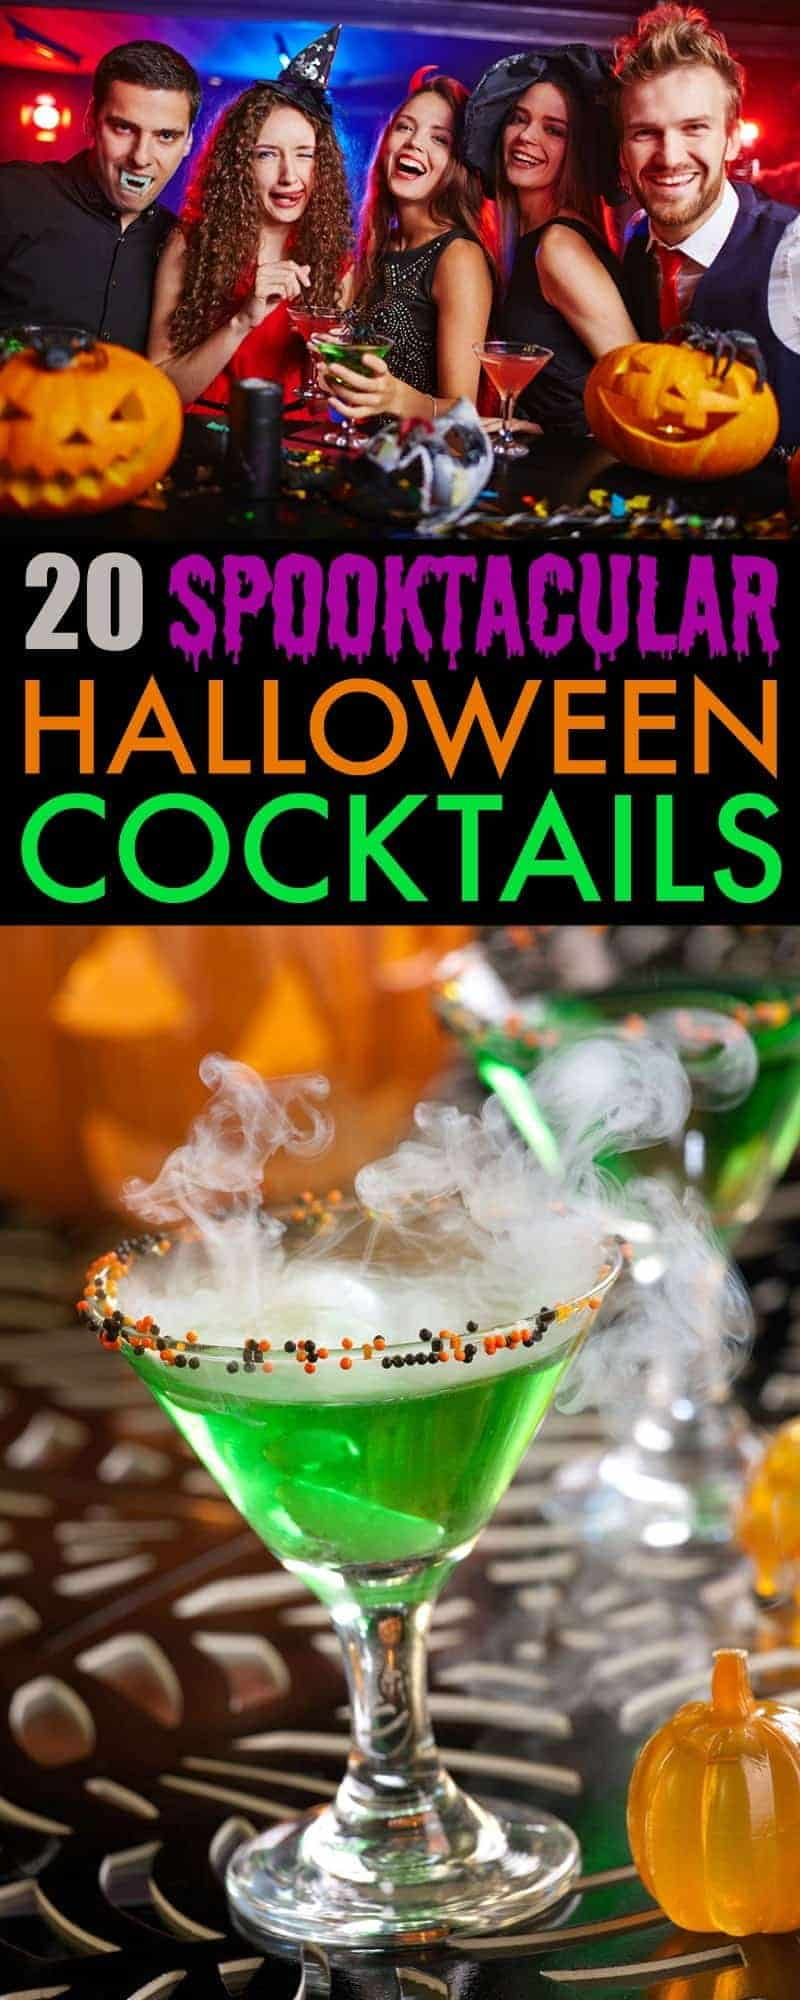 Take your spooky fun to the next level with these 20 delicious and festive Halloween Cocktails. Frightfully fun, tasty and fun to look at!